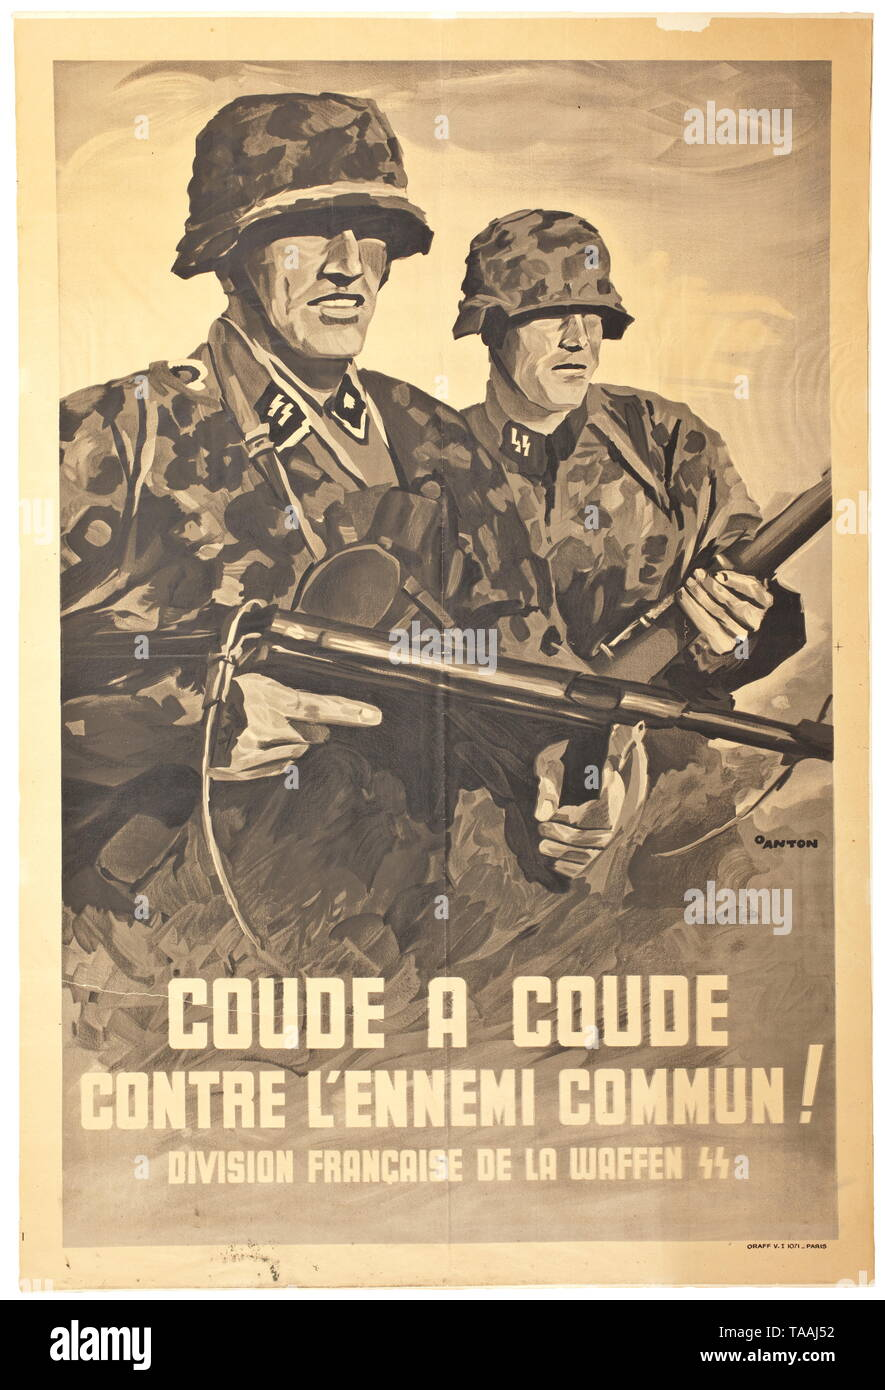 A French propaganda poster advertising the Waffen-SS design by Ottomar Anton (1895 - 1976) historic, historical, 20th century, 1930s, 1940s, Waffen-SS, armed division of the SS, armed service, armed services, NS, National Socialism, Nazism, Third Reich, German Reich, Germany, military, militaria, utensil, piece of equipment, utensils, object, objects, stills, clipping, clippings, cut out, cut-out, cut-outs, fascism, fascistic, National Socialist, Nazi, Nazi period, Editorial-Use-Only - Stock Image